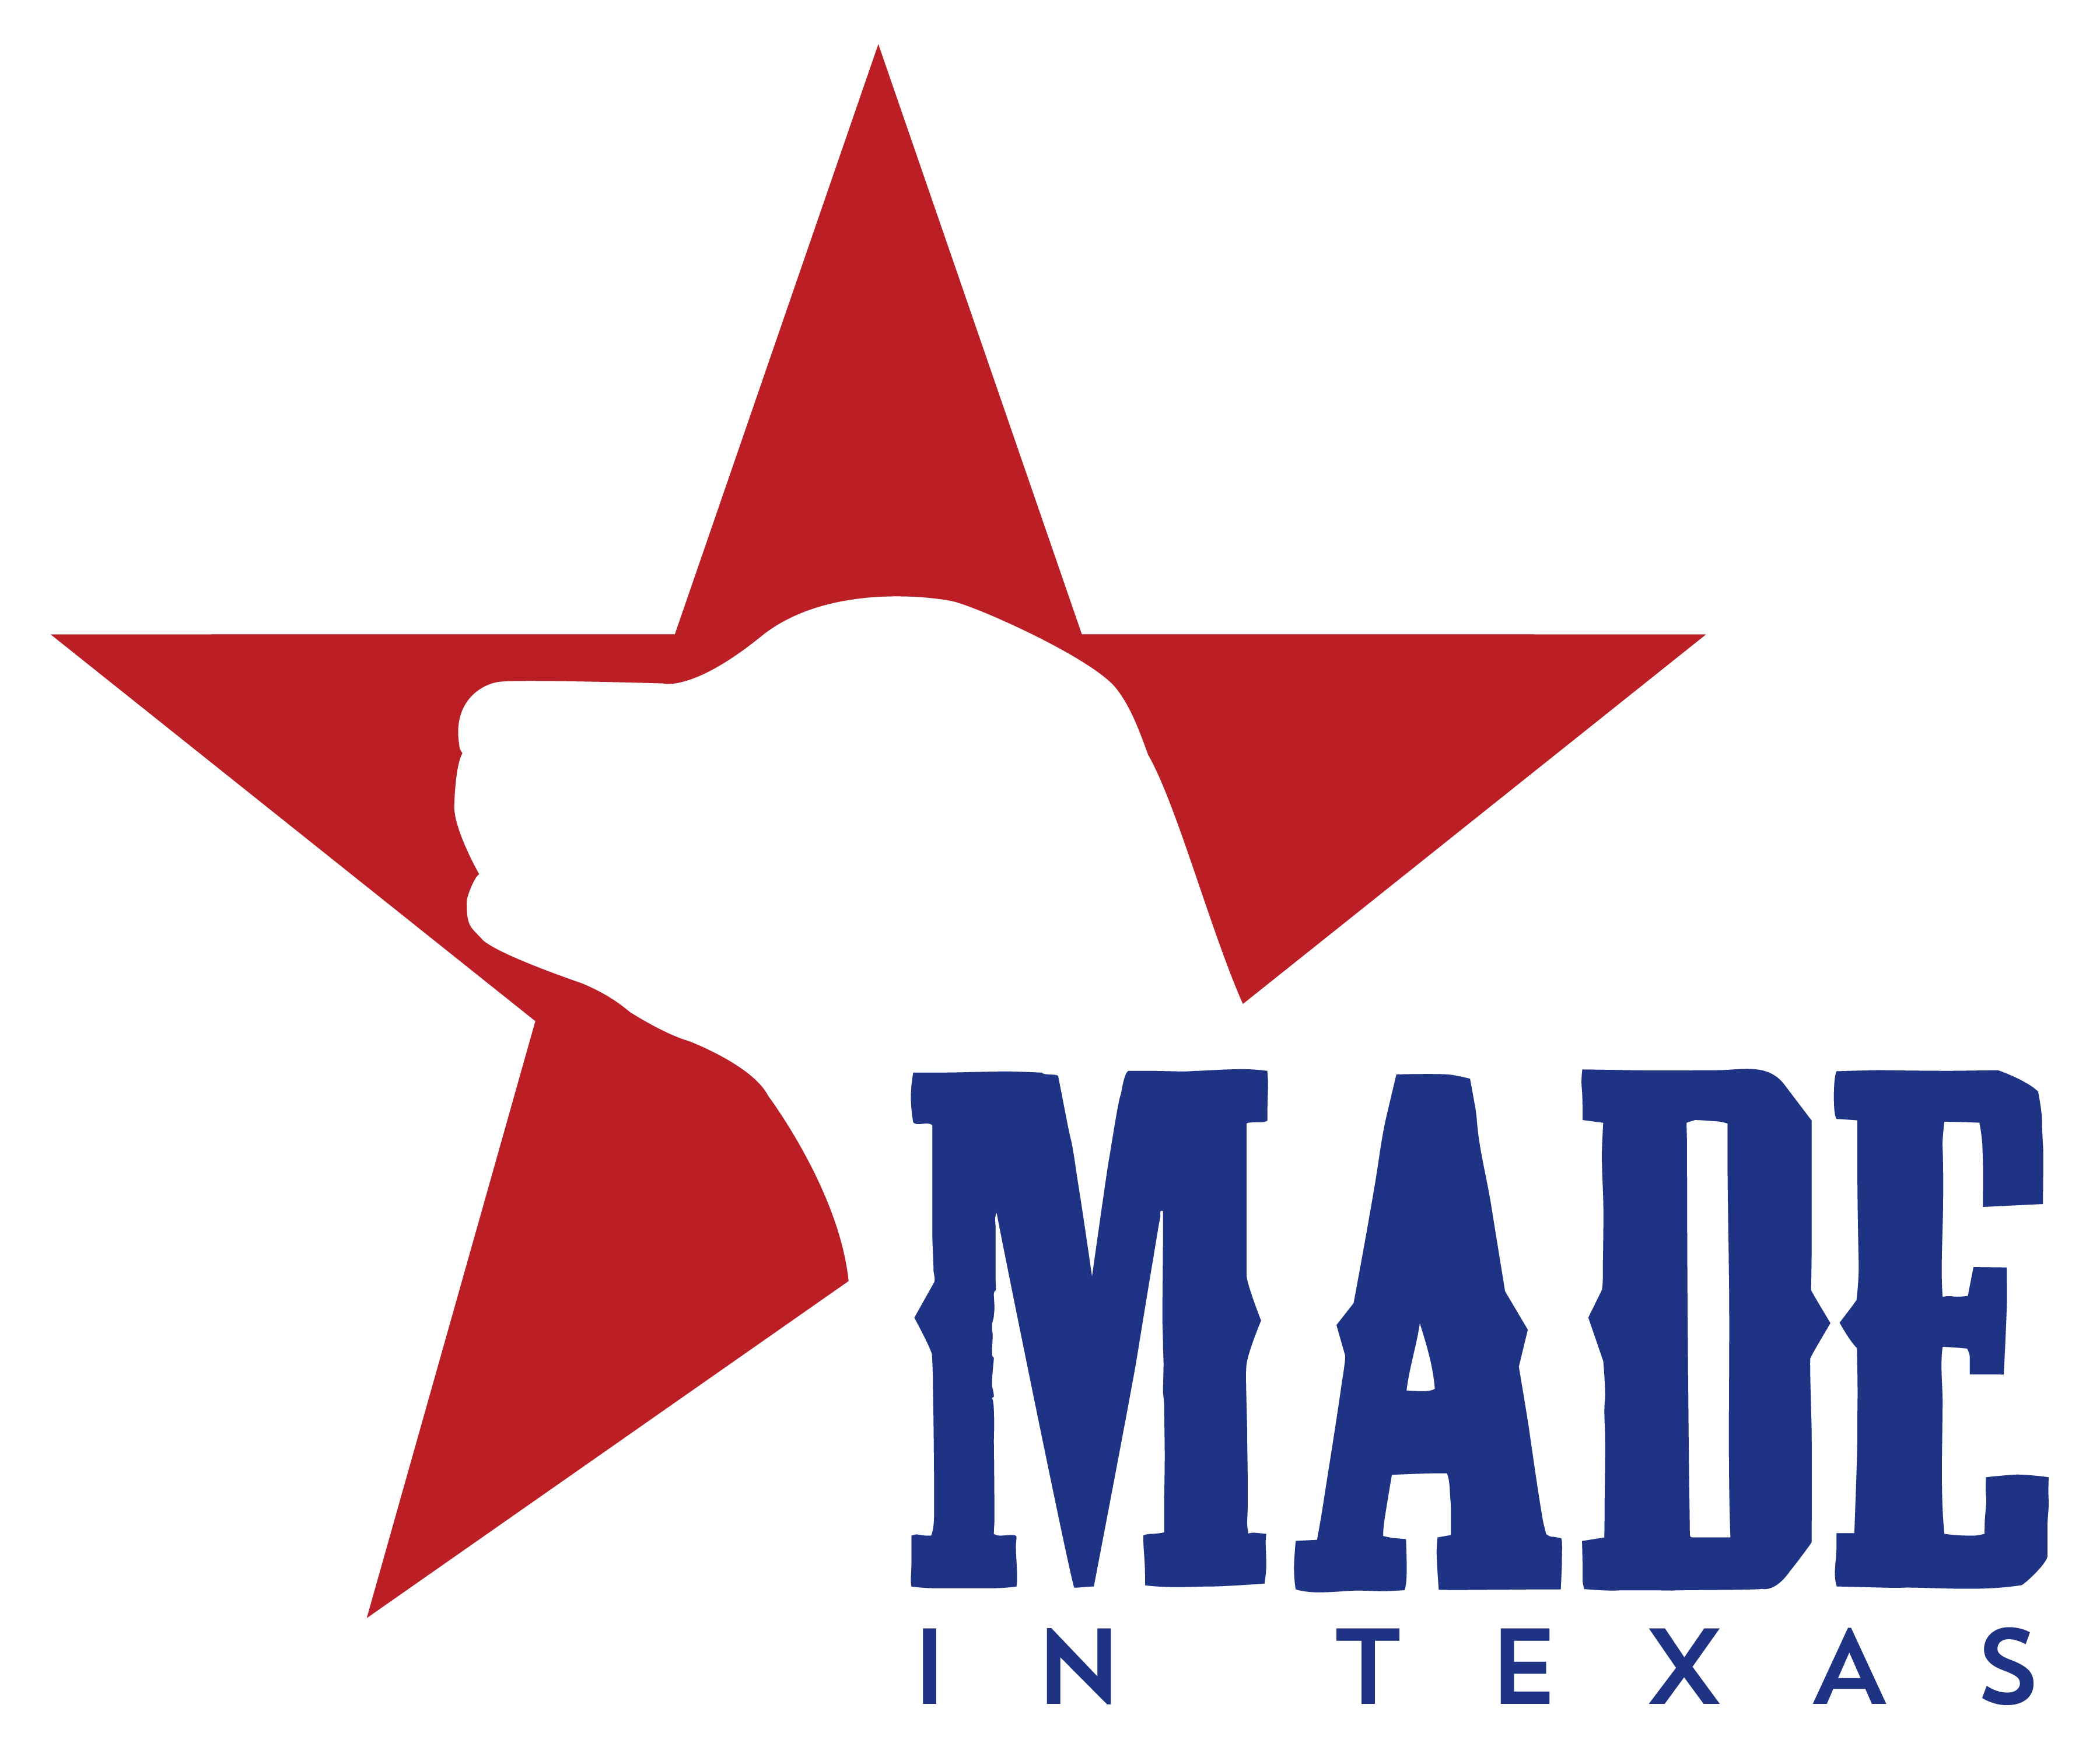 Made in texas png. Assistance dogs fcbadbcbffbcpng